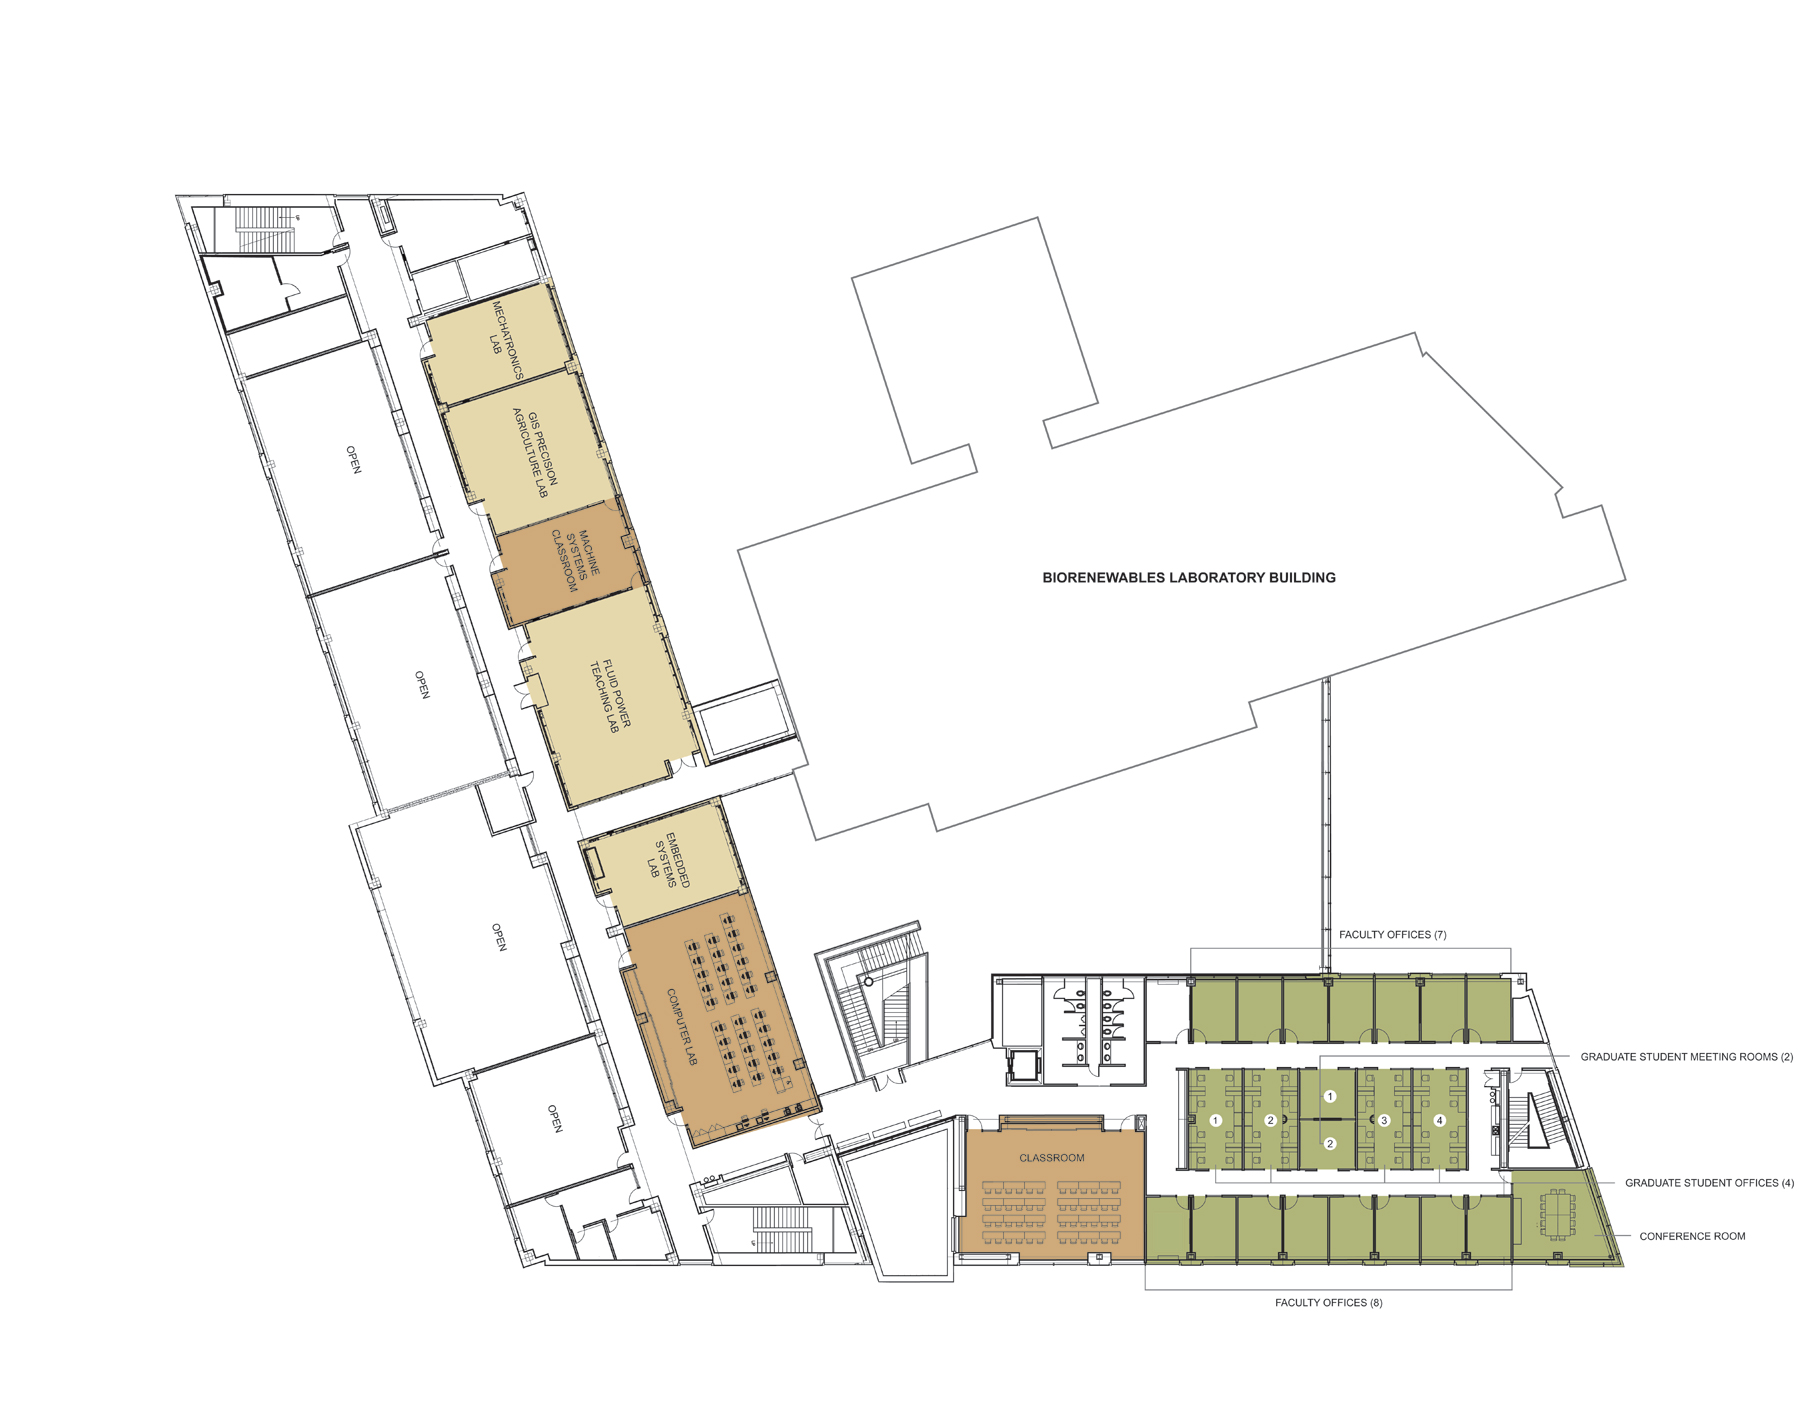 Building Floor Plans Department Of Agricultural And Biosystems